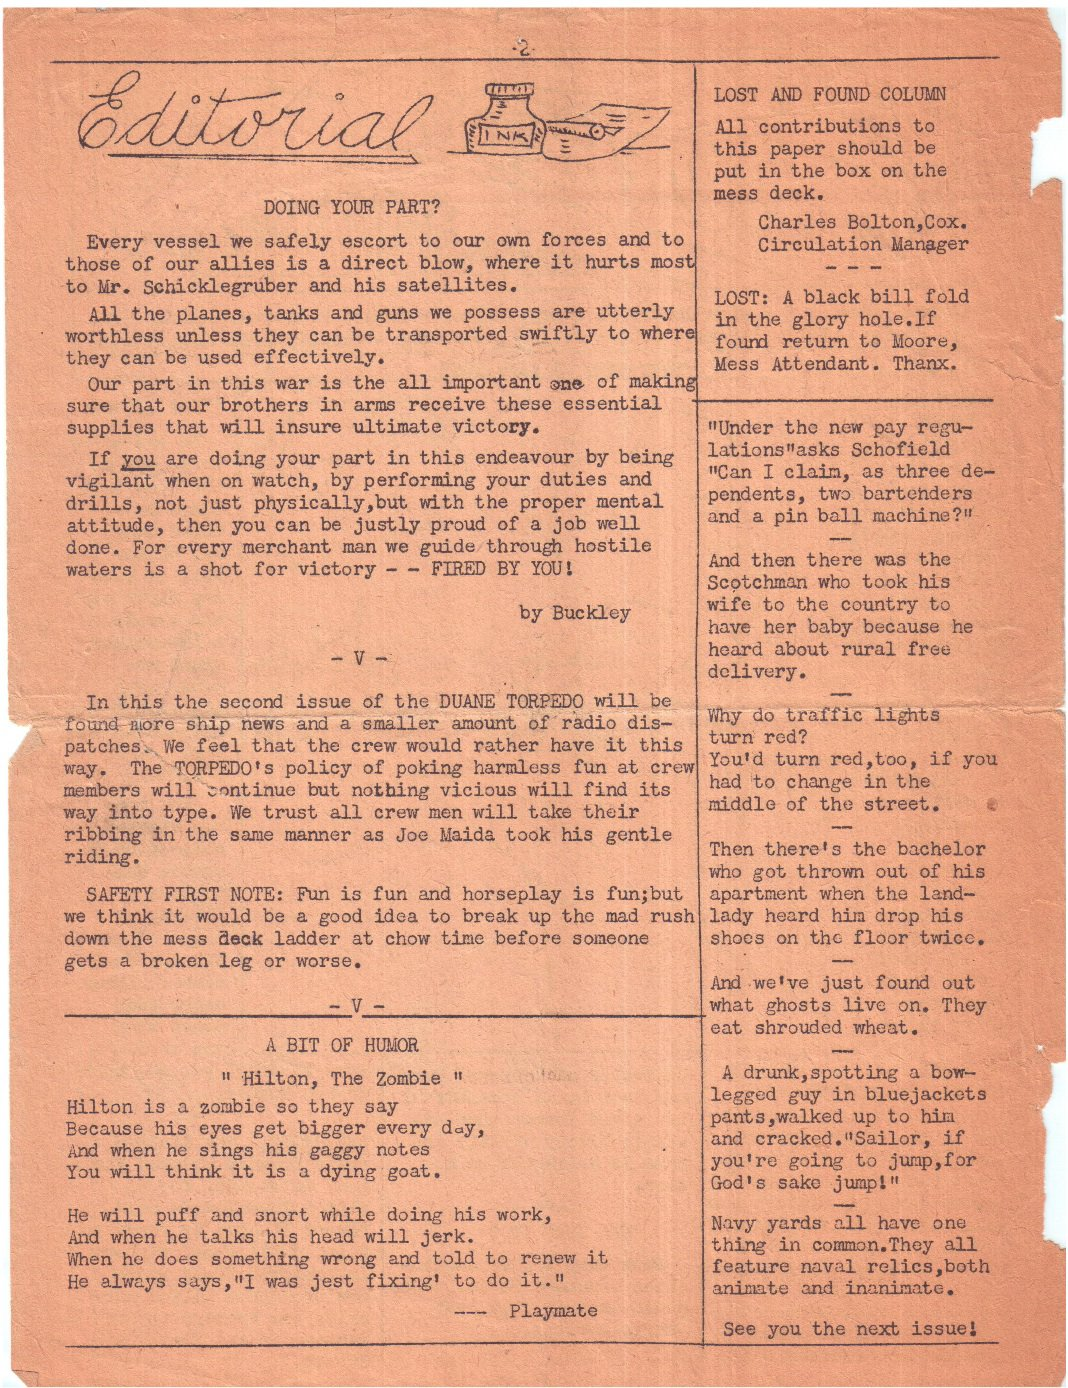 The Duane Torpedo - June 16, 1943 Page 2